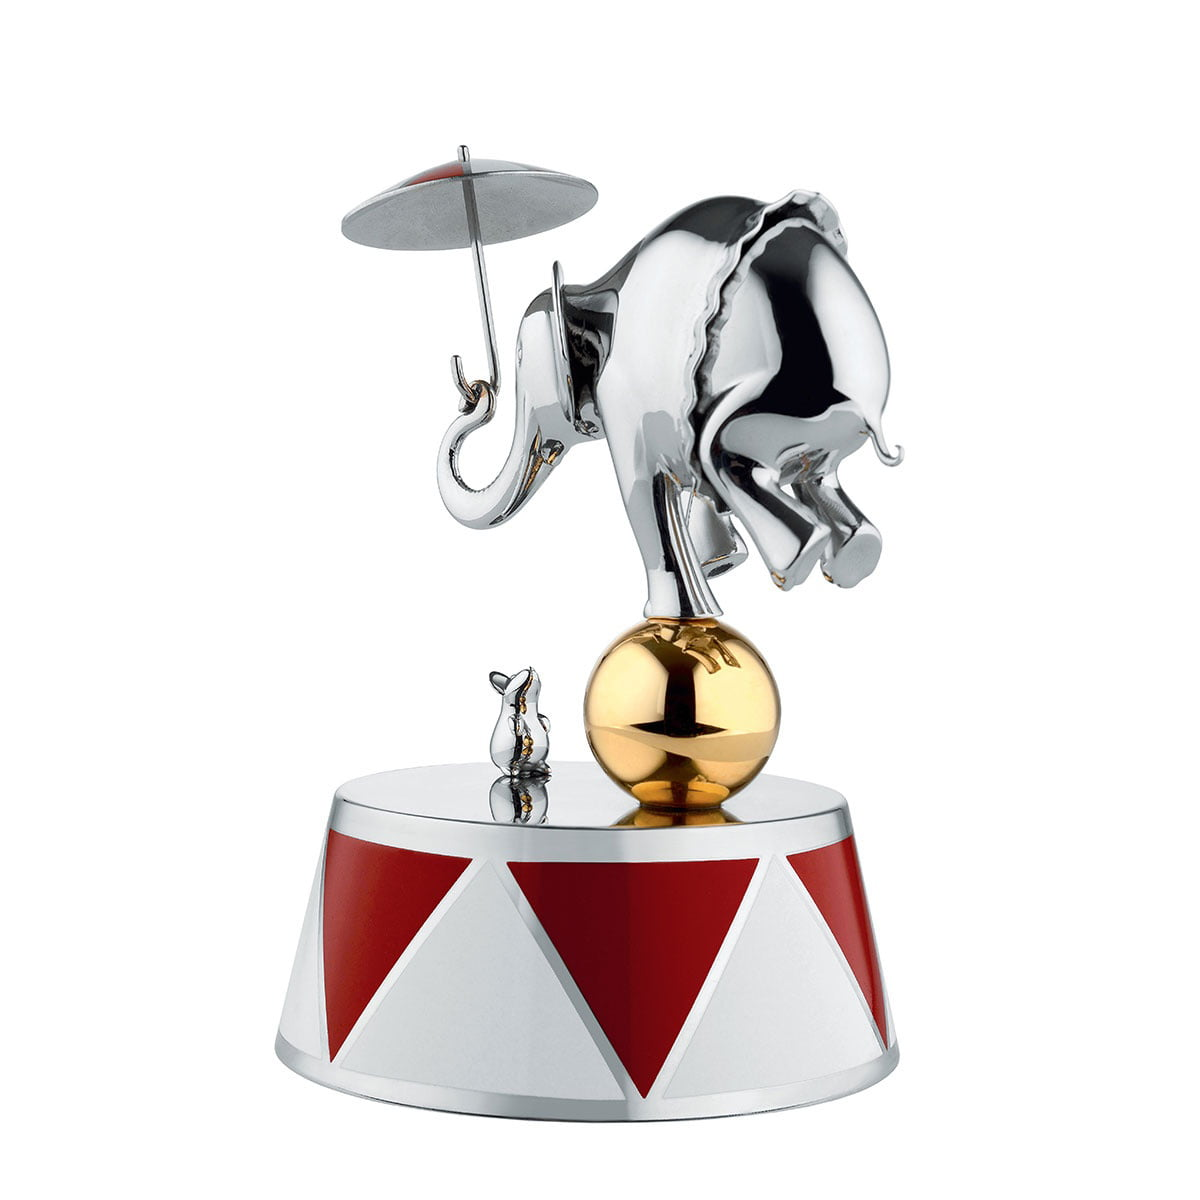 limited edition ballerina music box by alessi. Black Bedroom Furniture Sets. Home Design Ideas